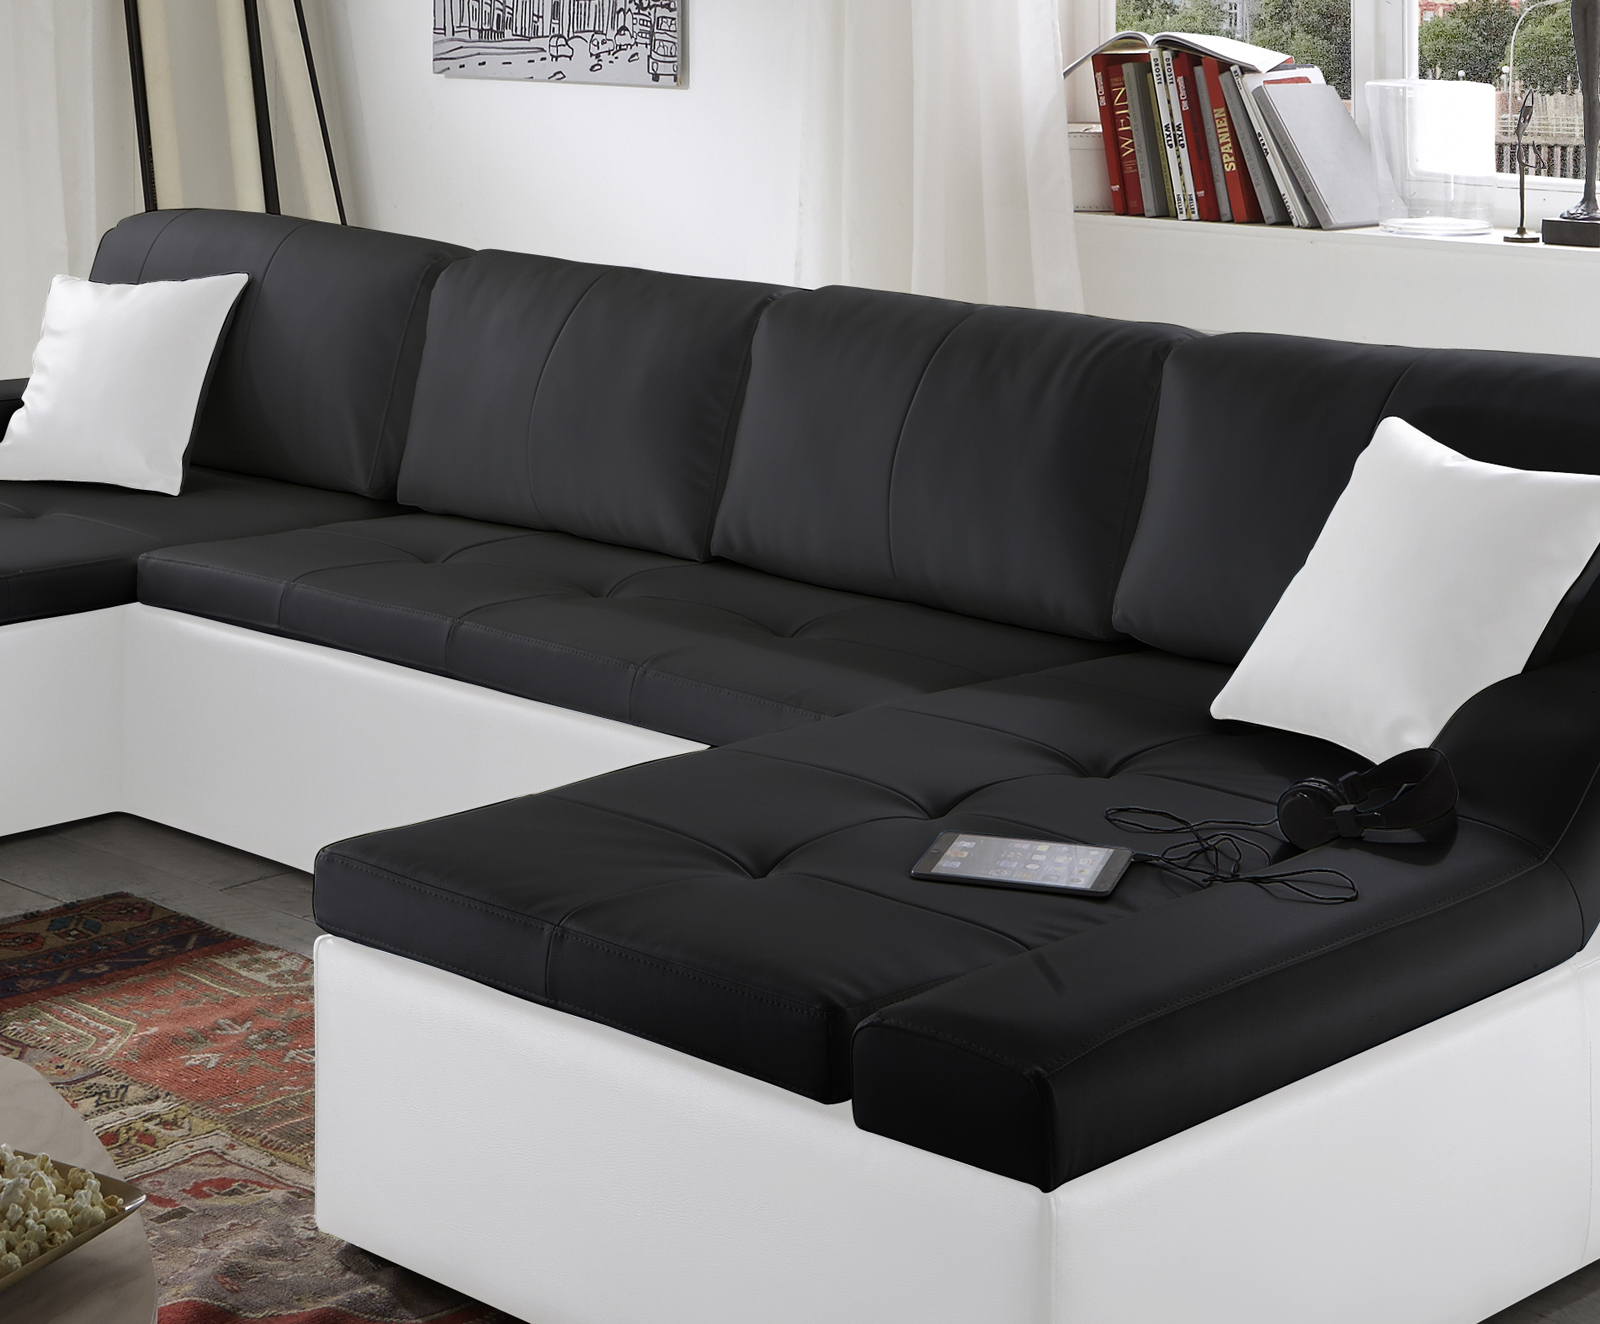 sam sofa schwarz wei wohnlandschaft rosella 230 x 335 x 190 cm. Black Bedroom Furniture Sets. Home Design Ideas